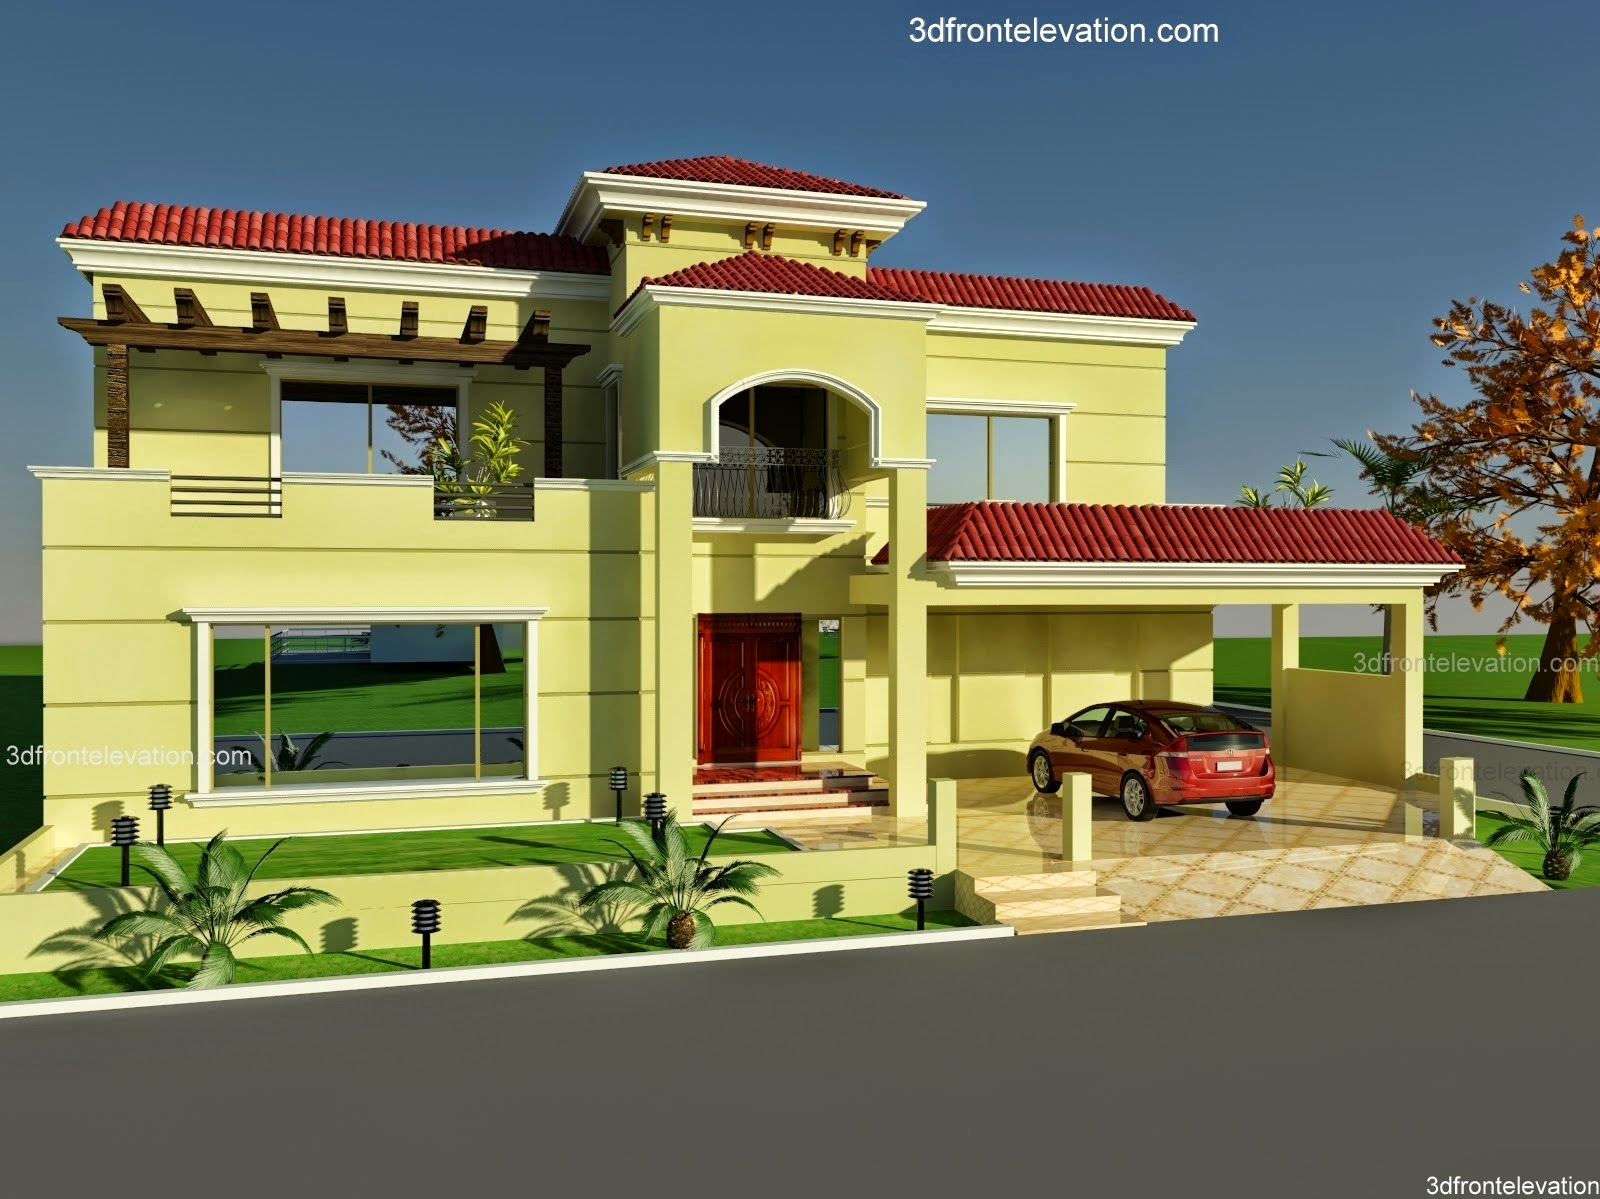 Front Elevation In Lahore : Pakistan house exterior view with floor plan joy studio